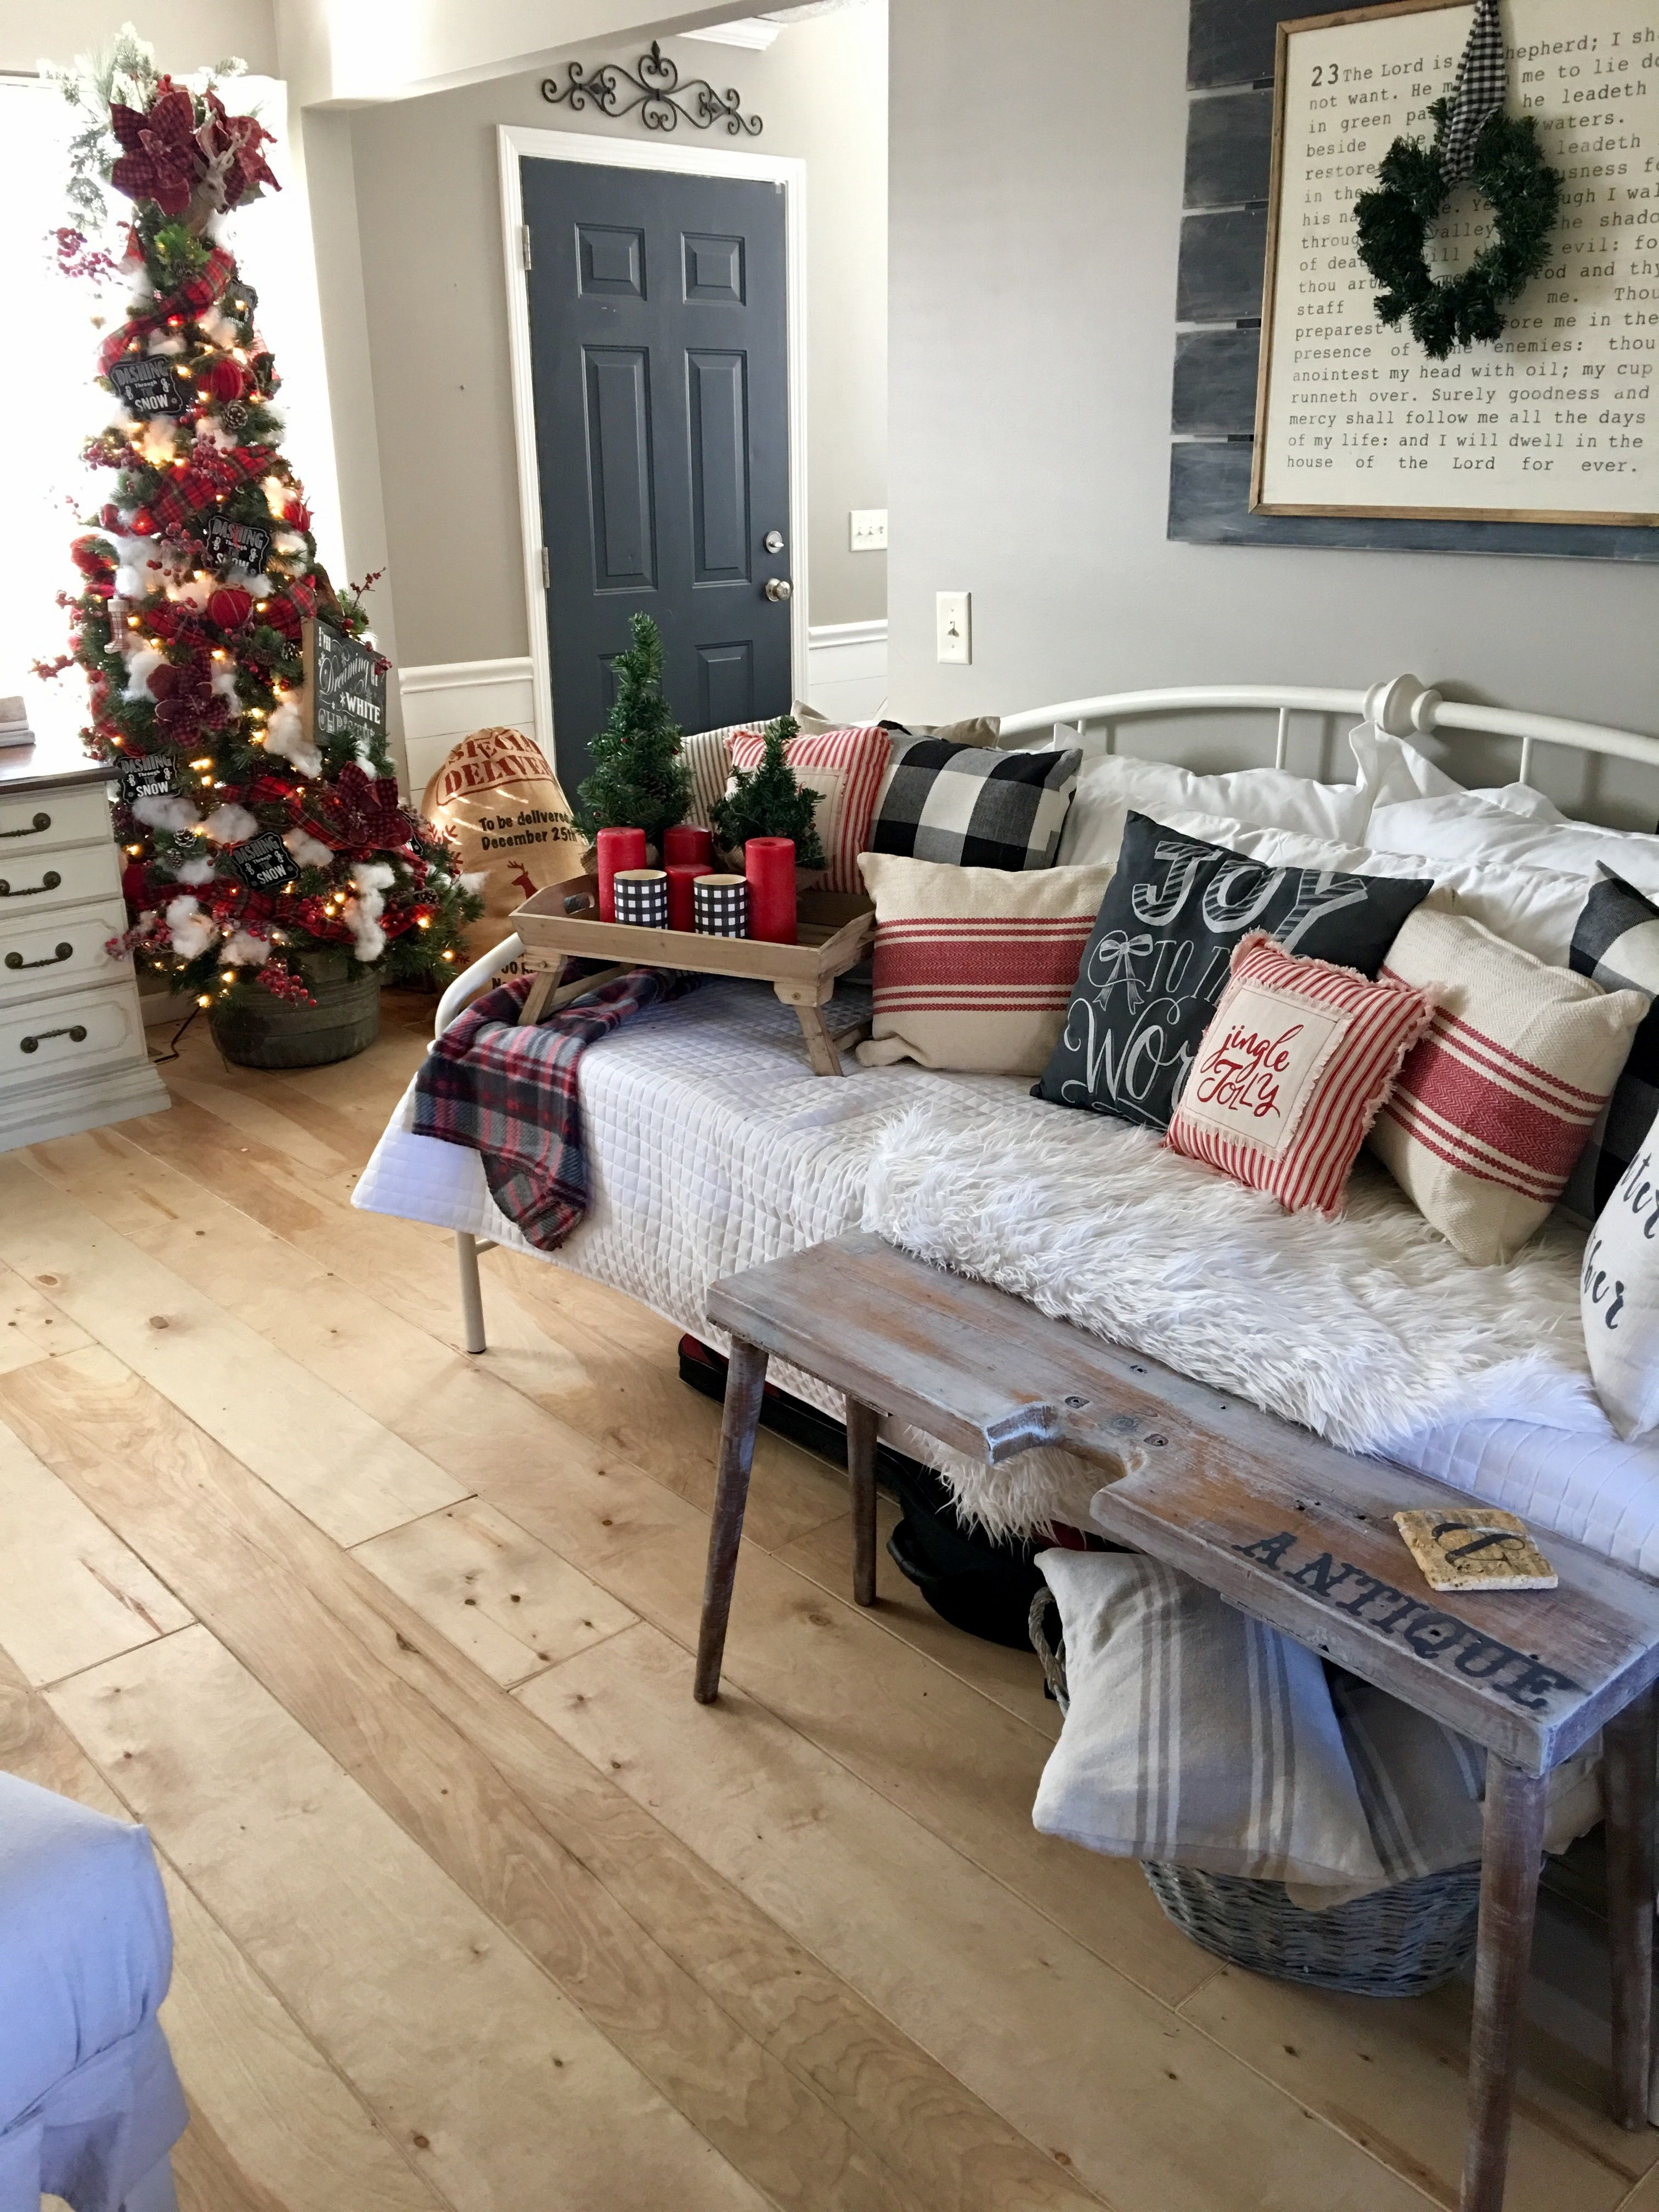 living room decorating ideas red and black%0A The Other Side of Neutral  Farmhouse Christmas decor  Red  black and  buffalo check